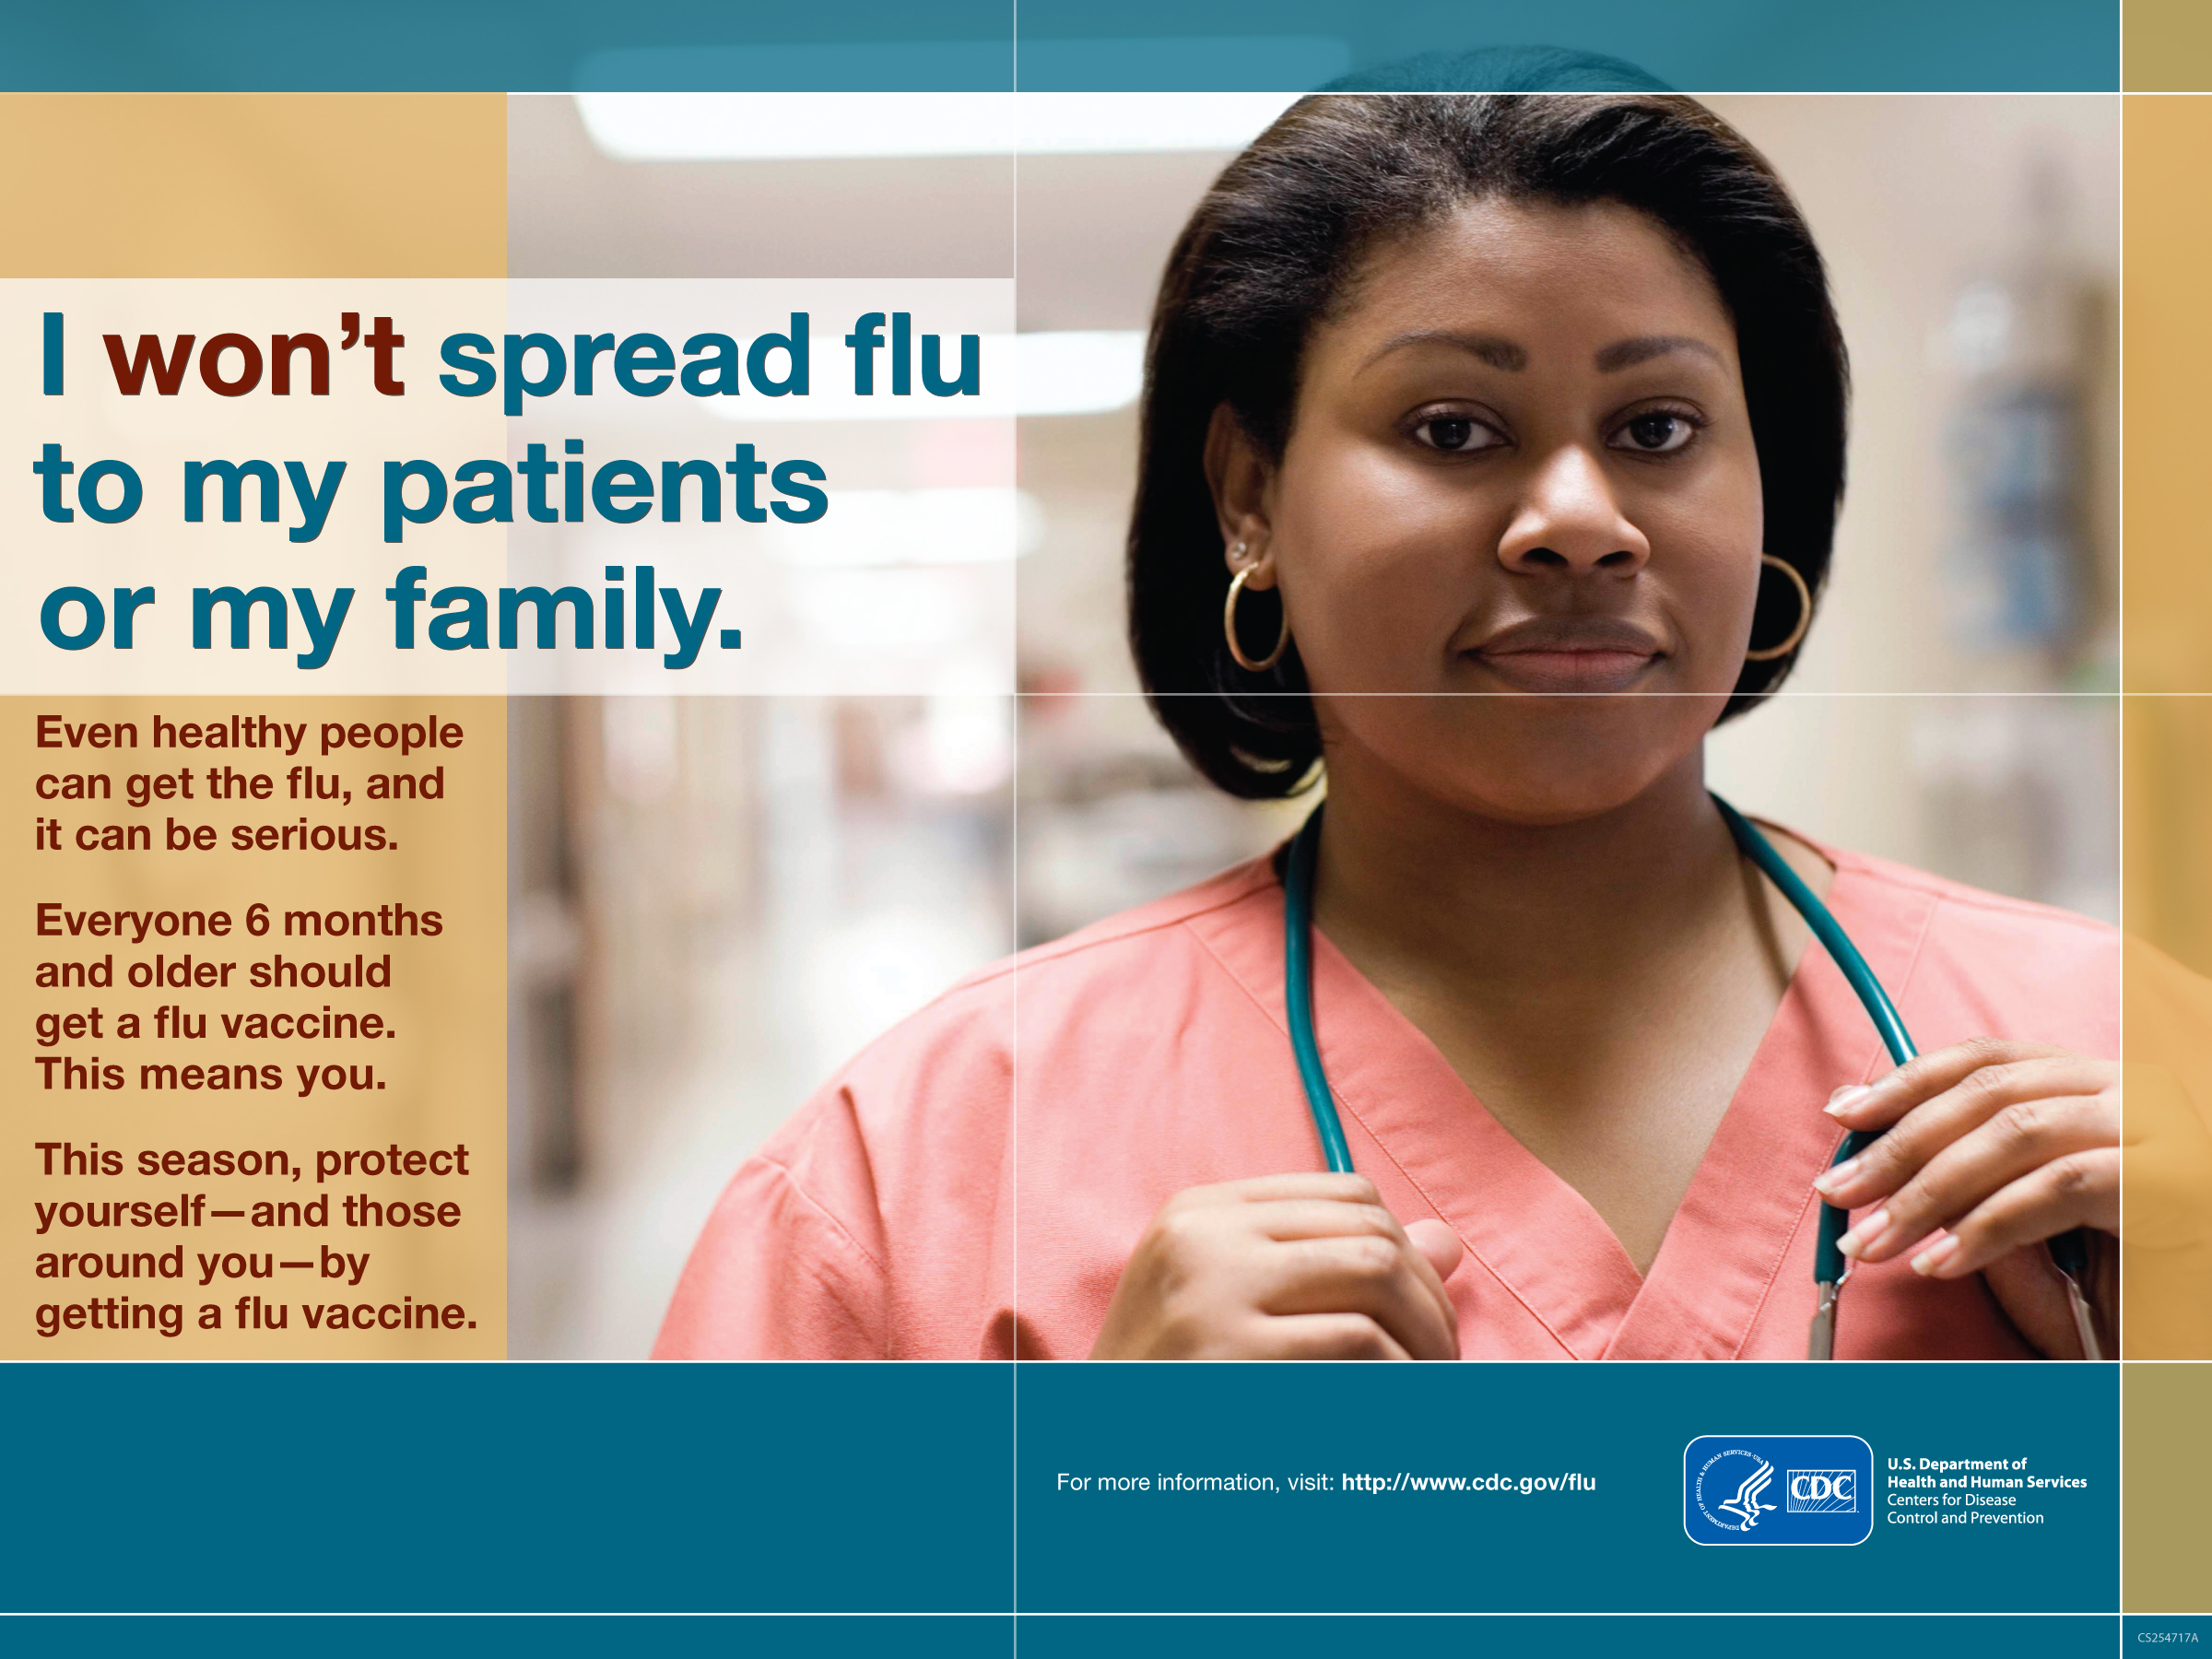 I won't spread flu to my patients or my family.